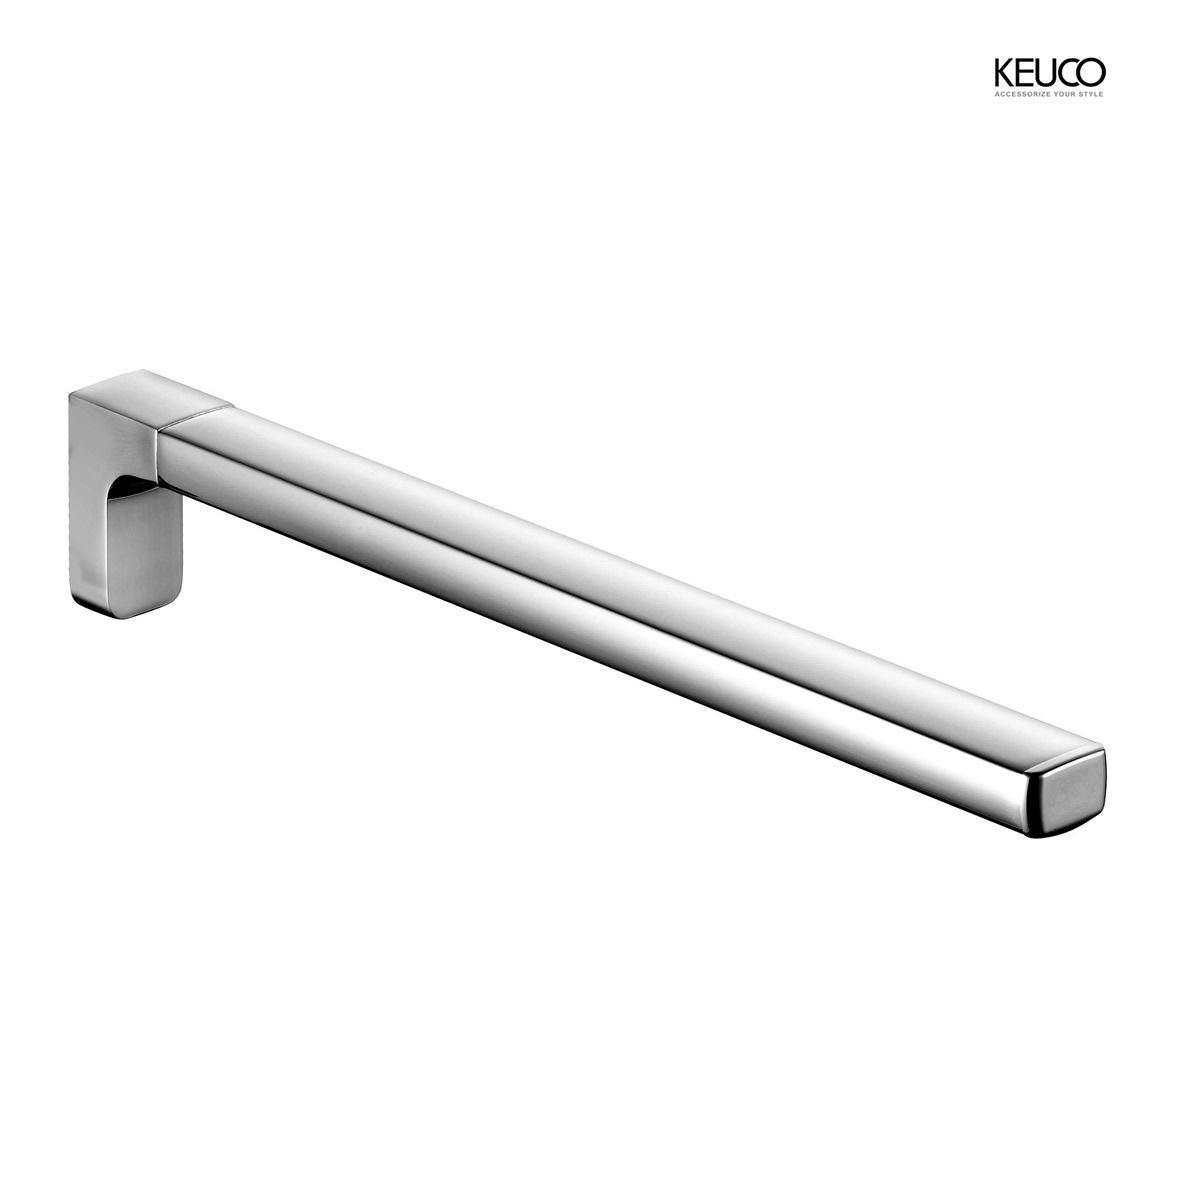 Keuco Moll Single Towel Holder